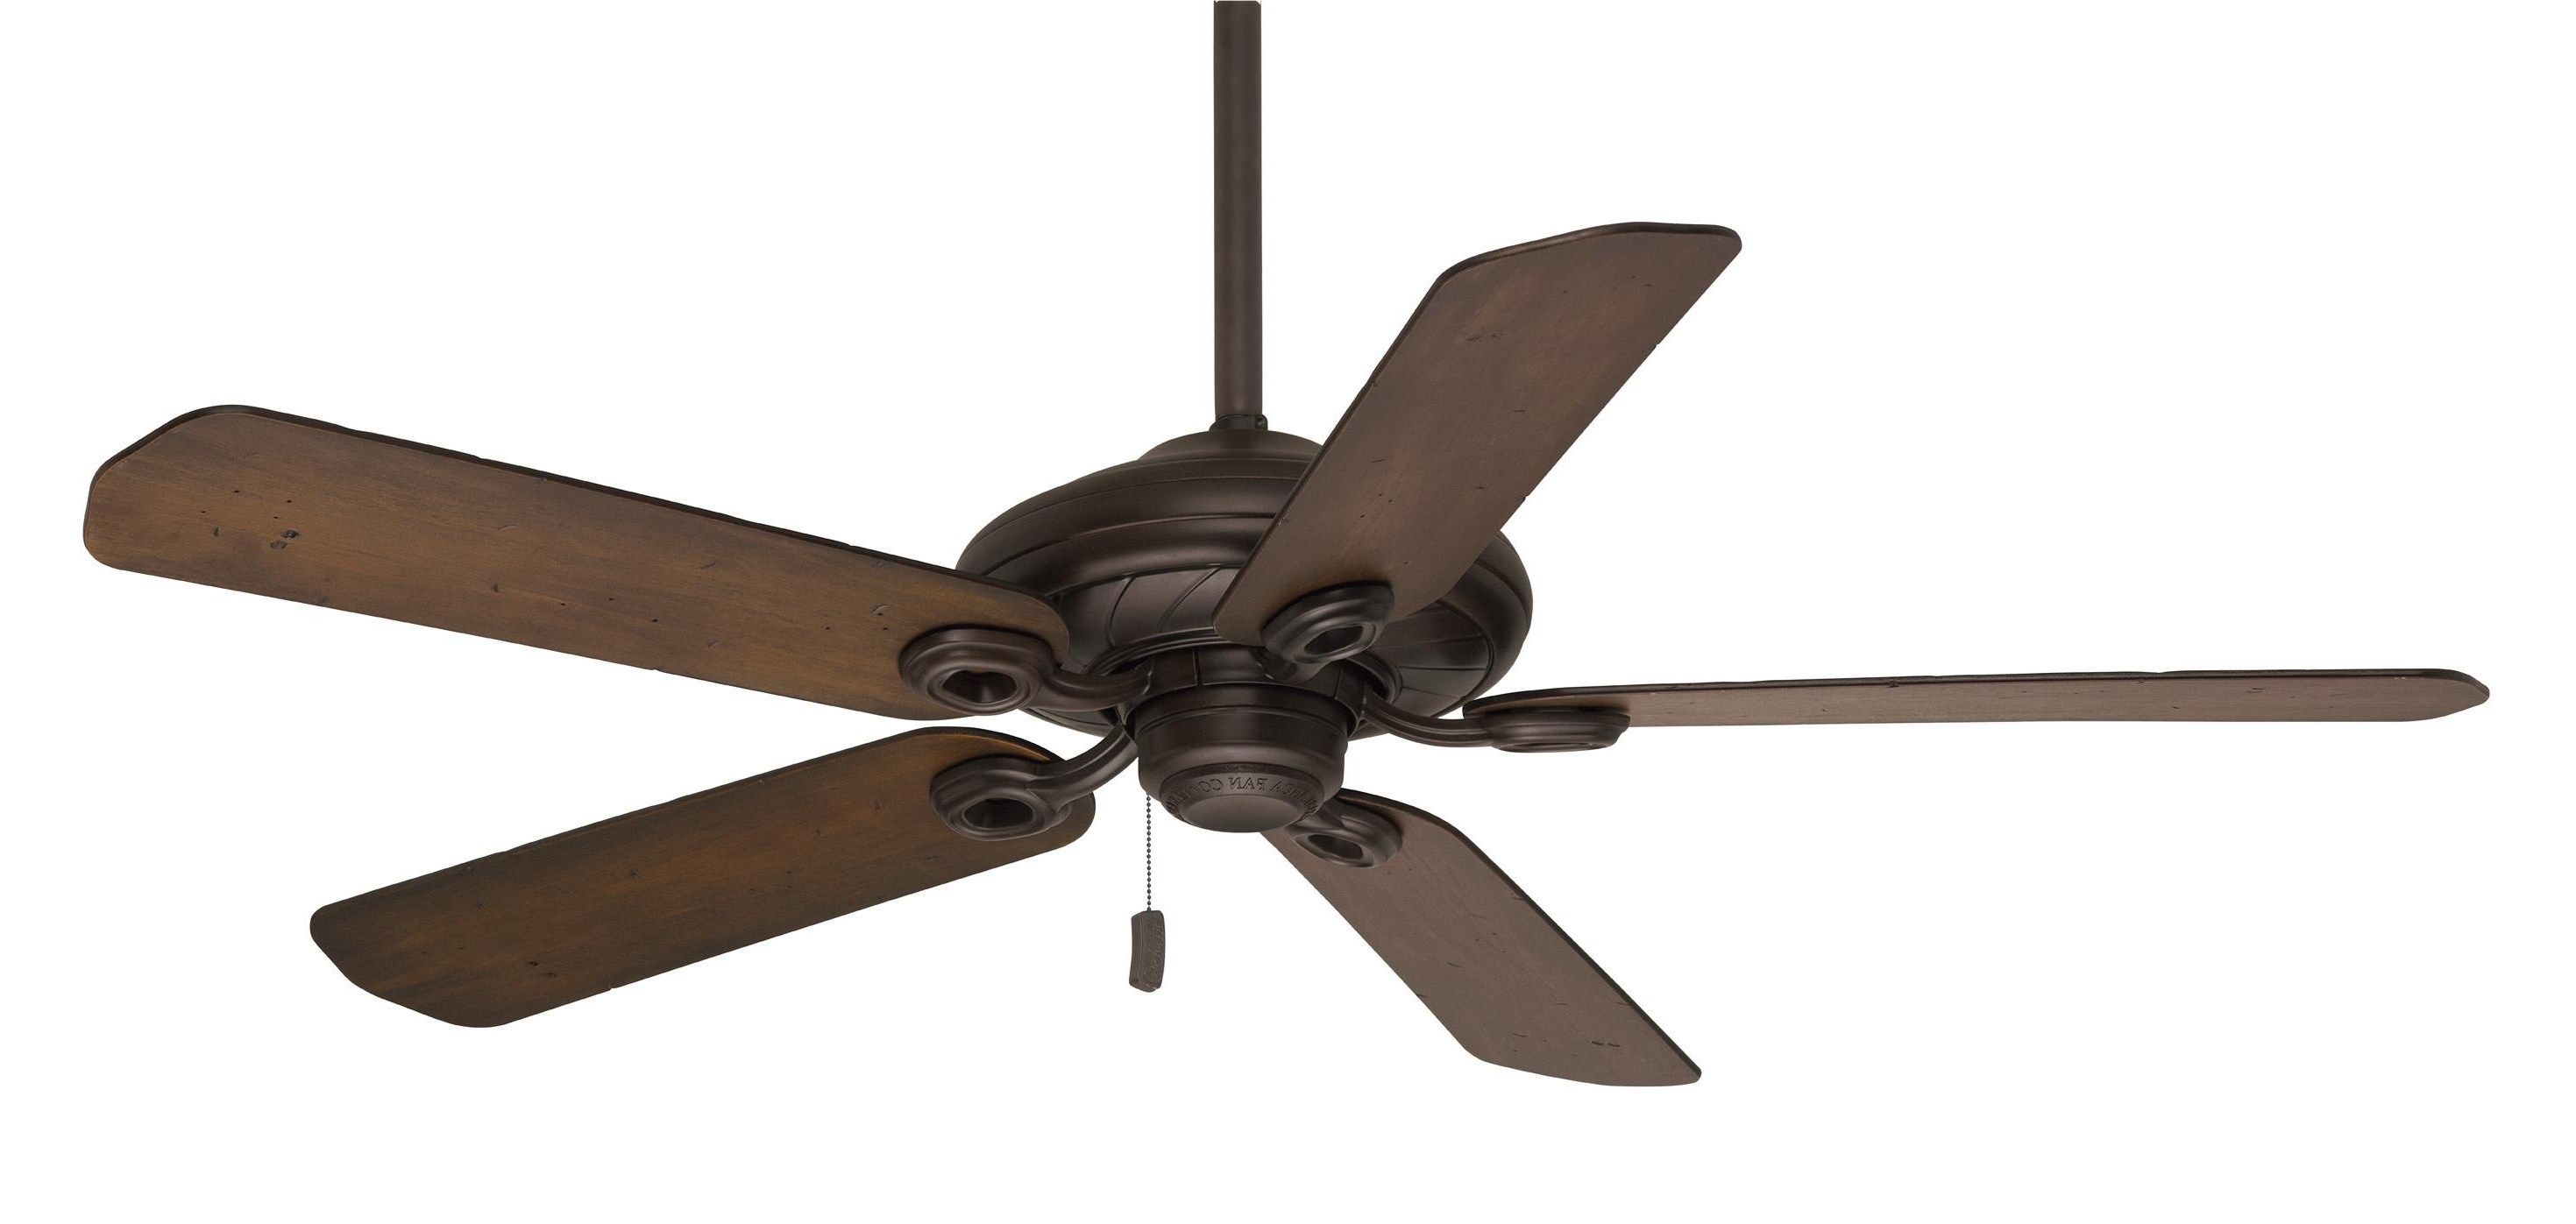 Oversized Outdoor Ceiling Fans Throughout Newest Ceiling Lights : Oversized Ceiling Fans With Lights Astonishing Ch (View 12 of 20)